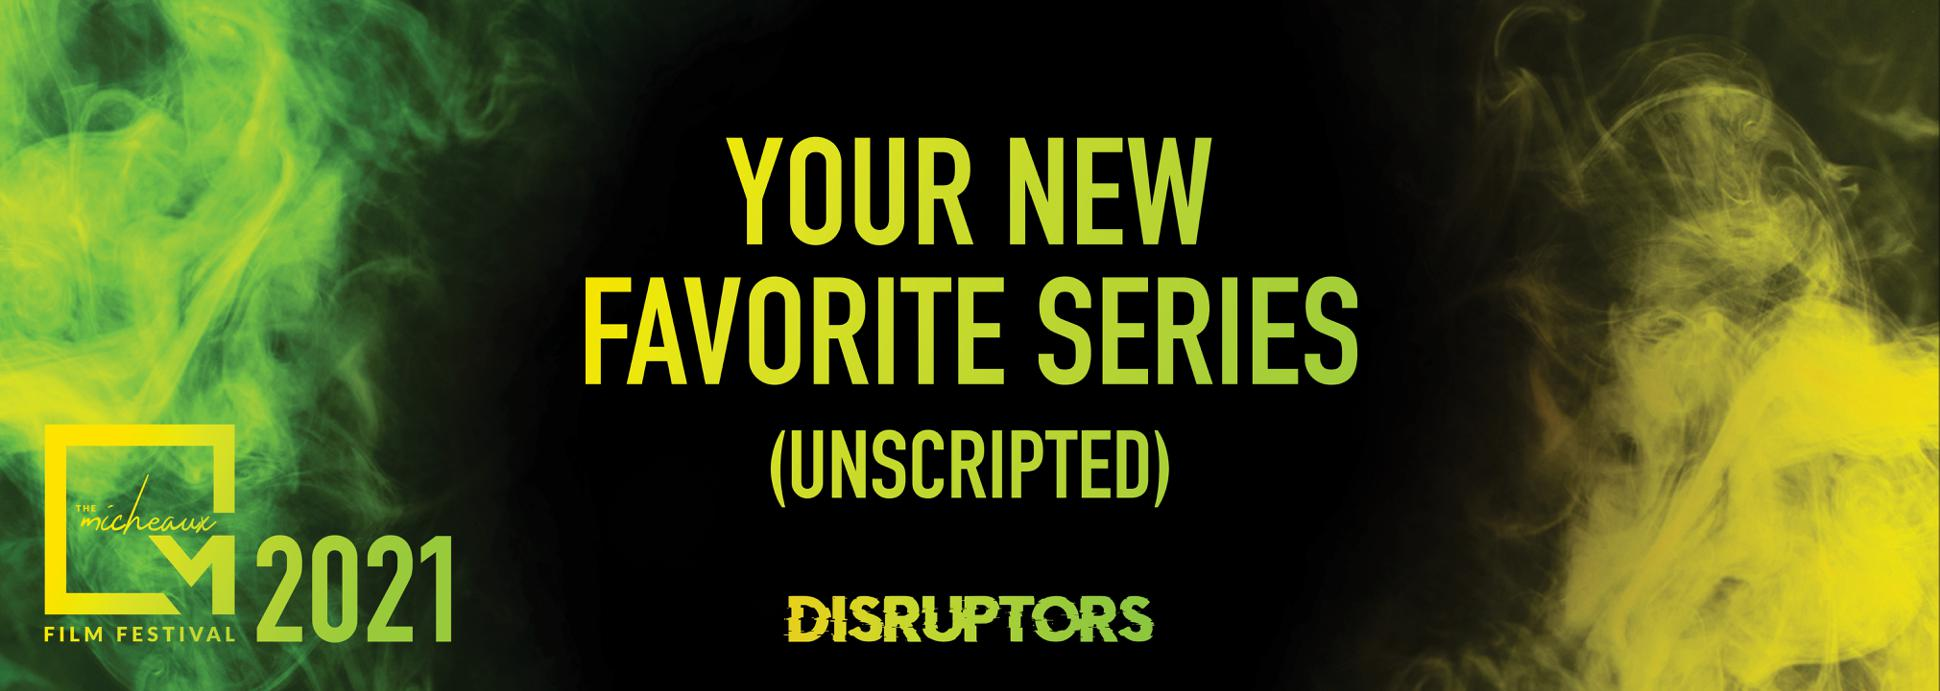 Your New Favorite Series  (An Unscripted Collection)